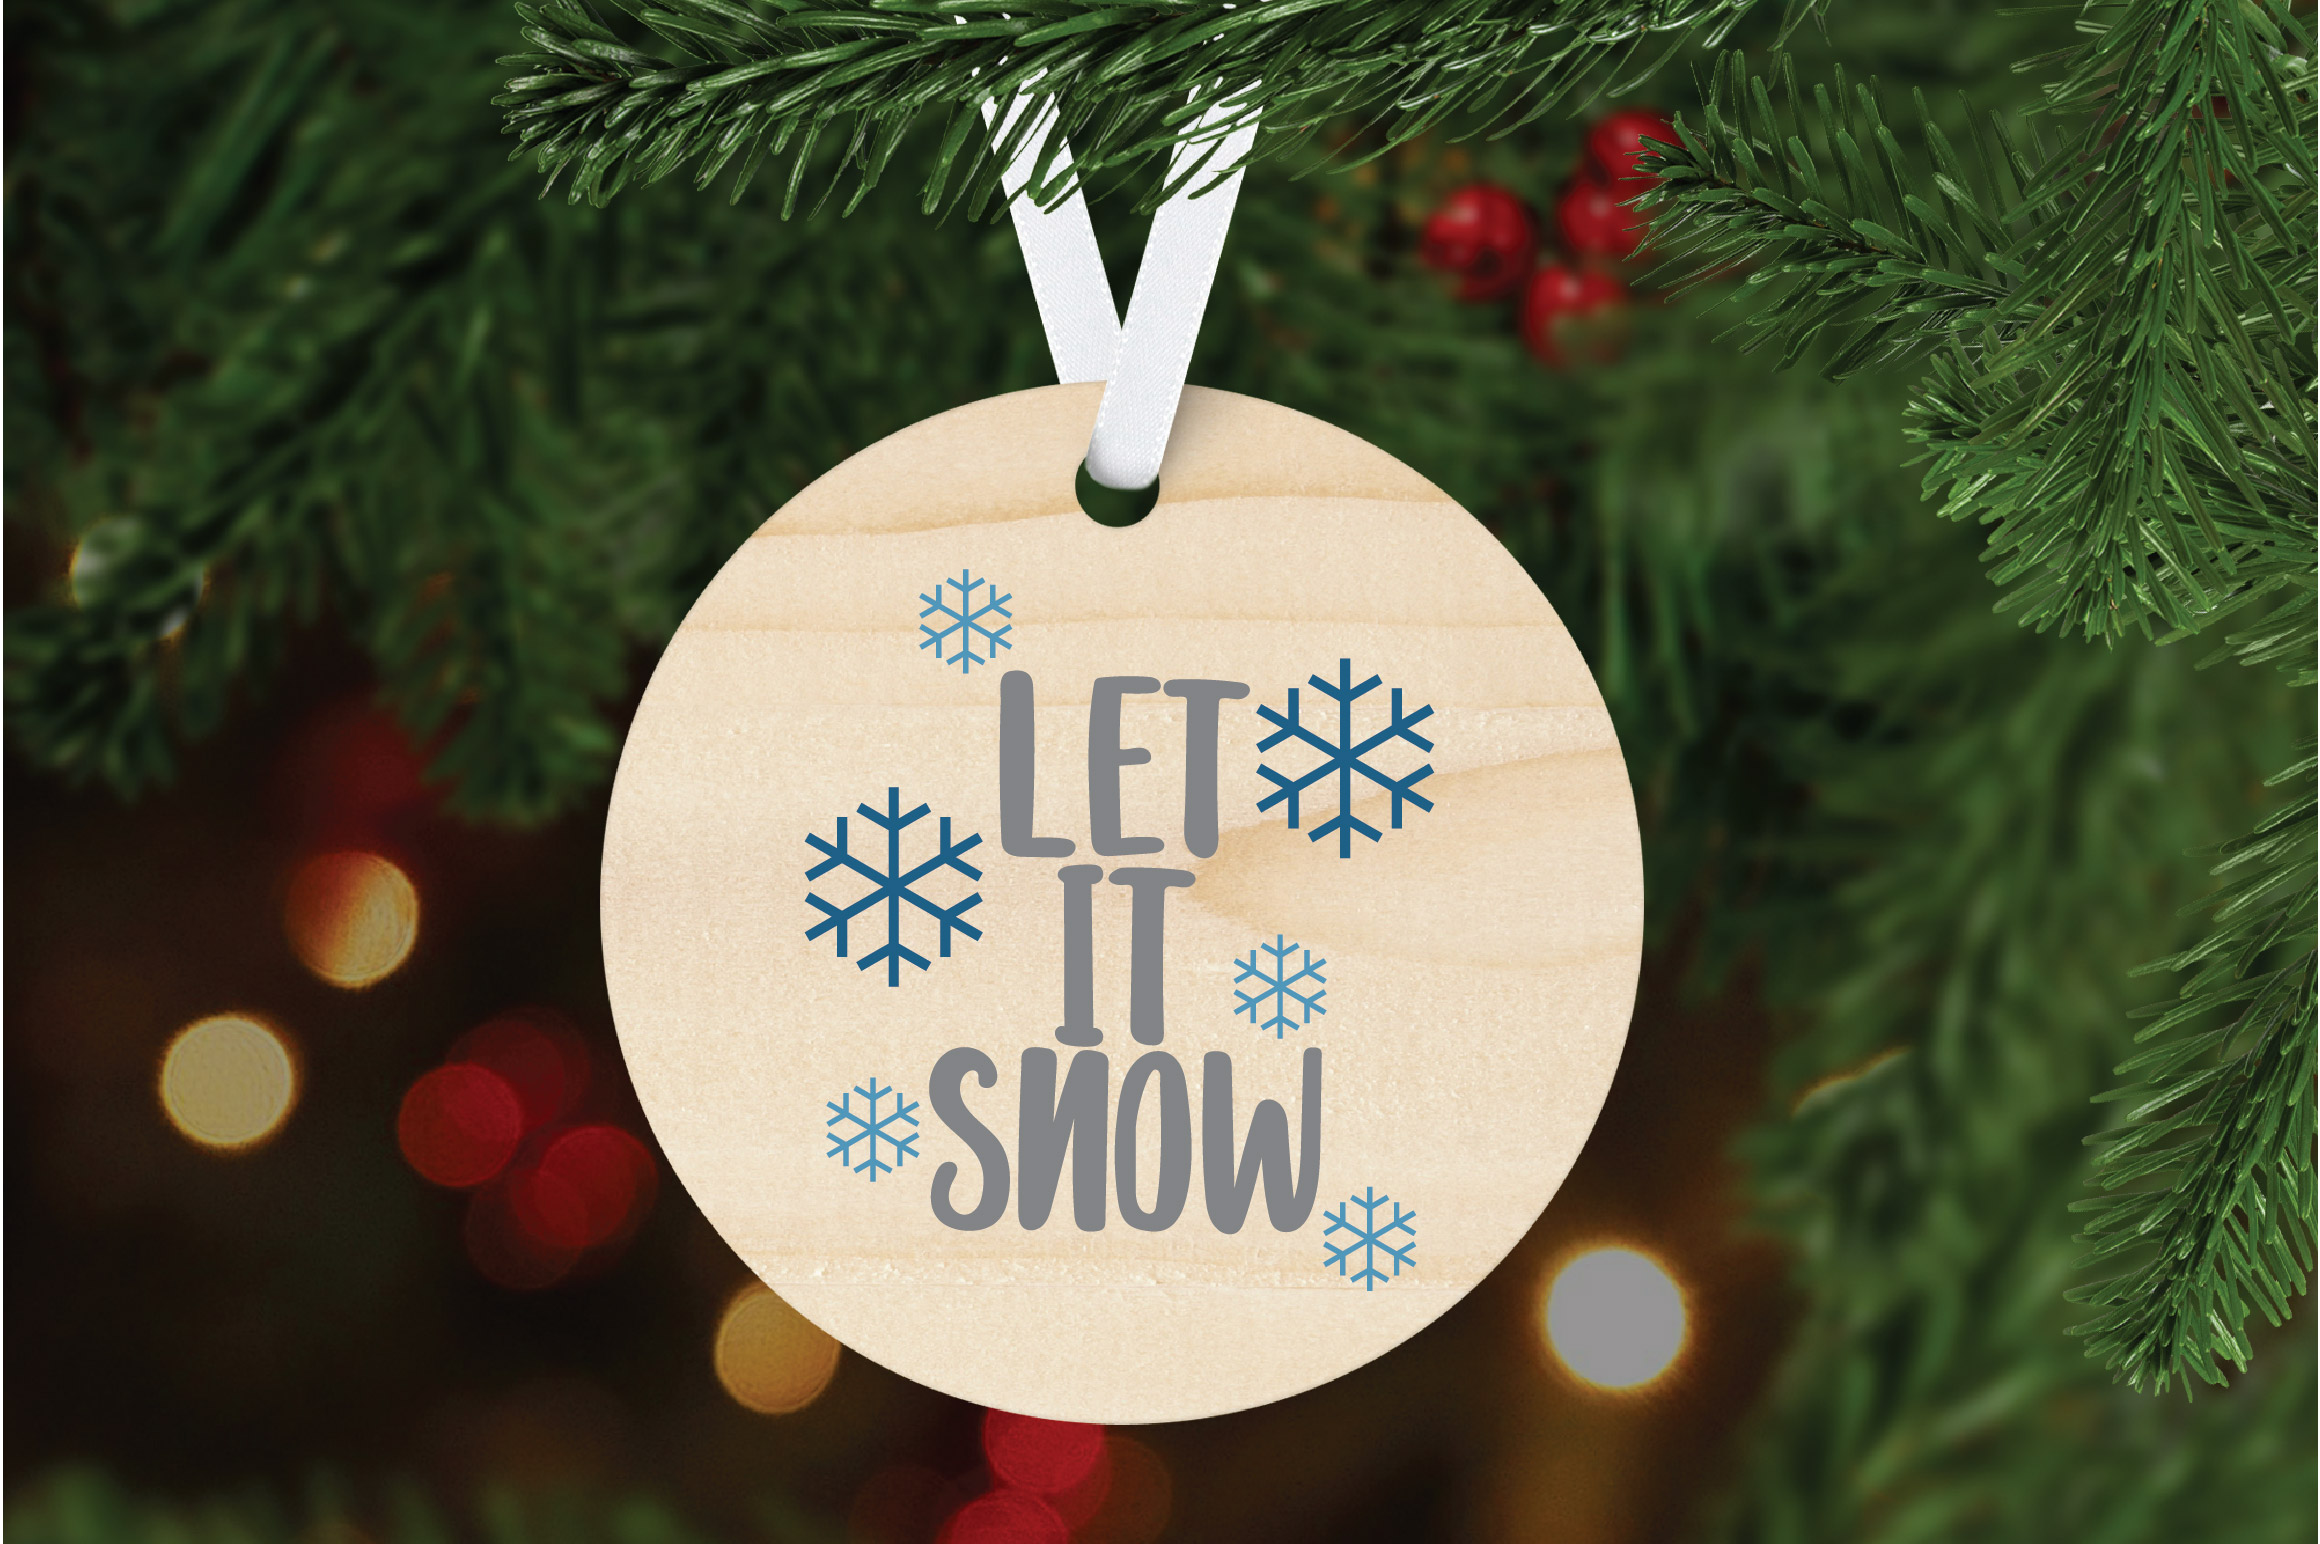 Let it Snow SVG Cut File - Christmas SVG example image 5